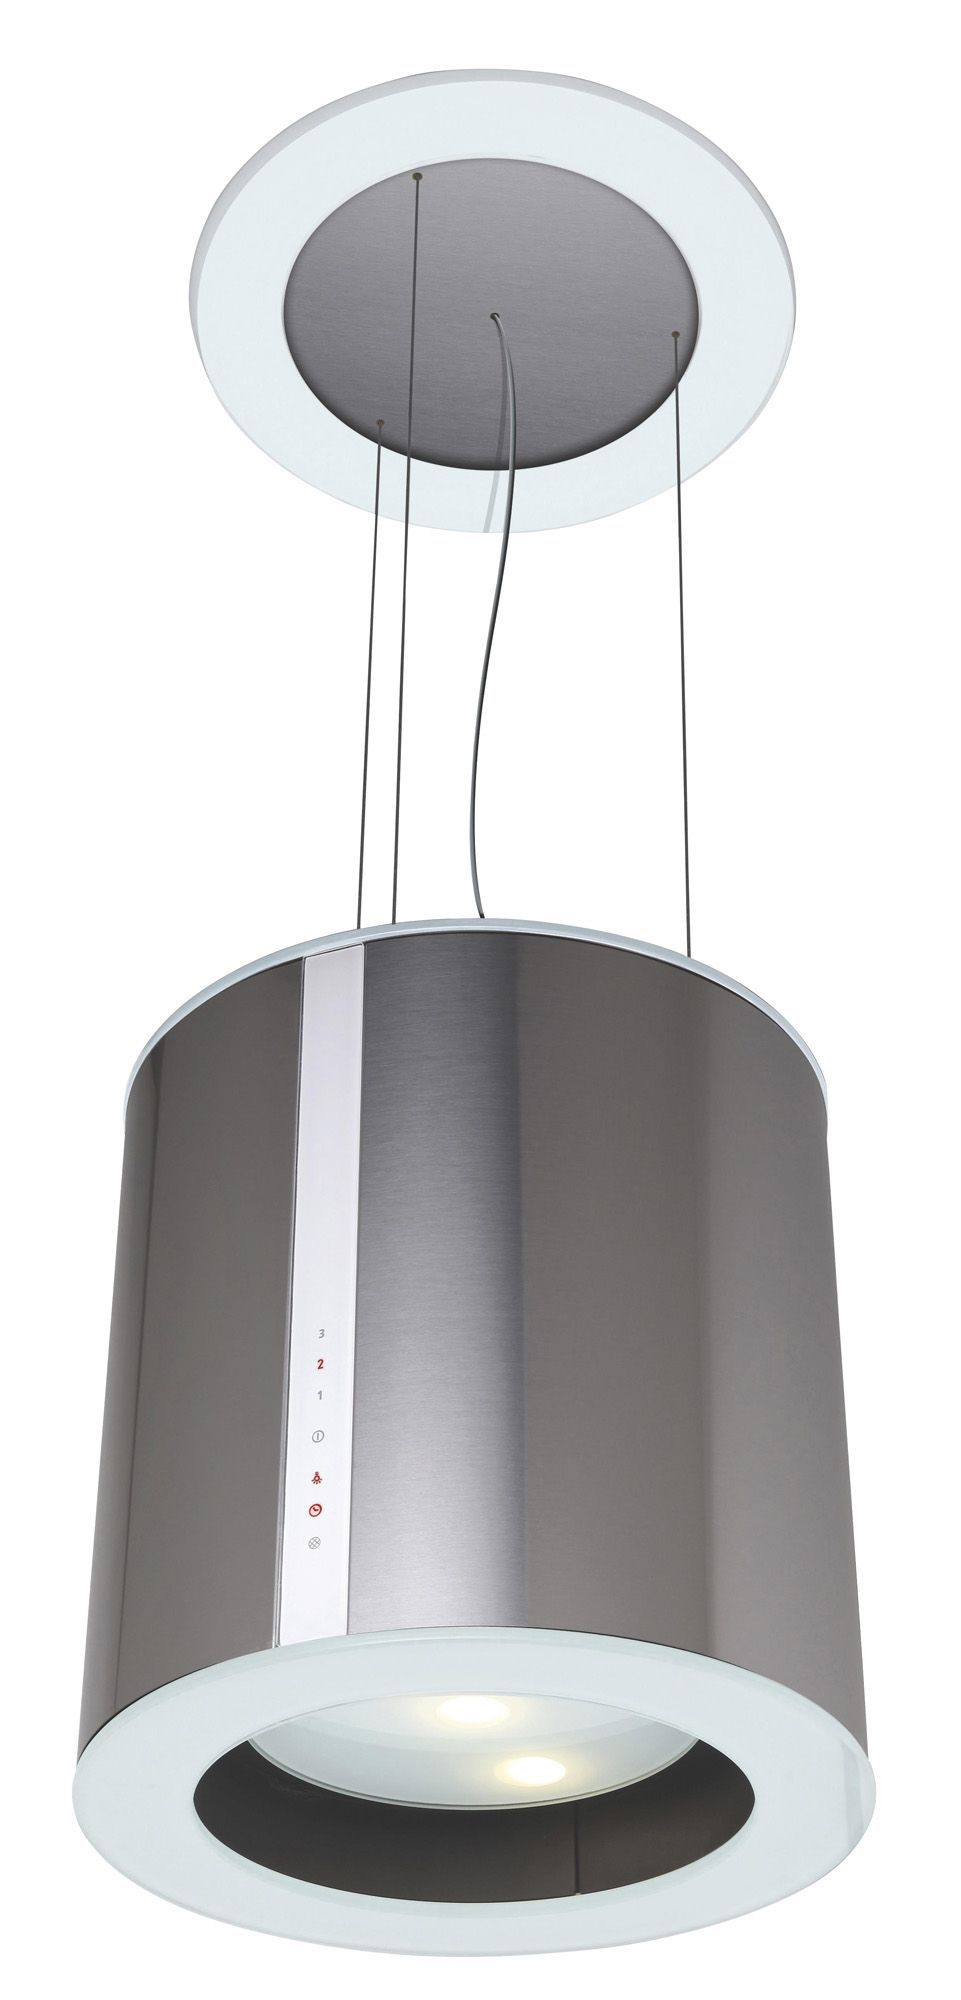 Designair chandelier stainless steel island cooker hood w 400mm designair chandelier stainless steel island cooker hood w 400mm departments diy at bq aloadofball Image collections